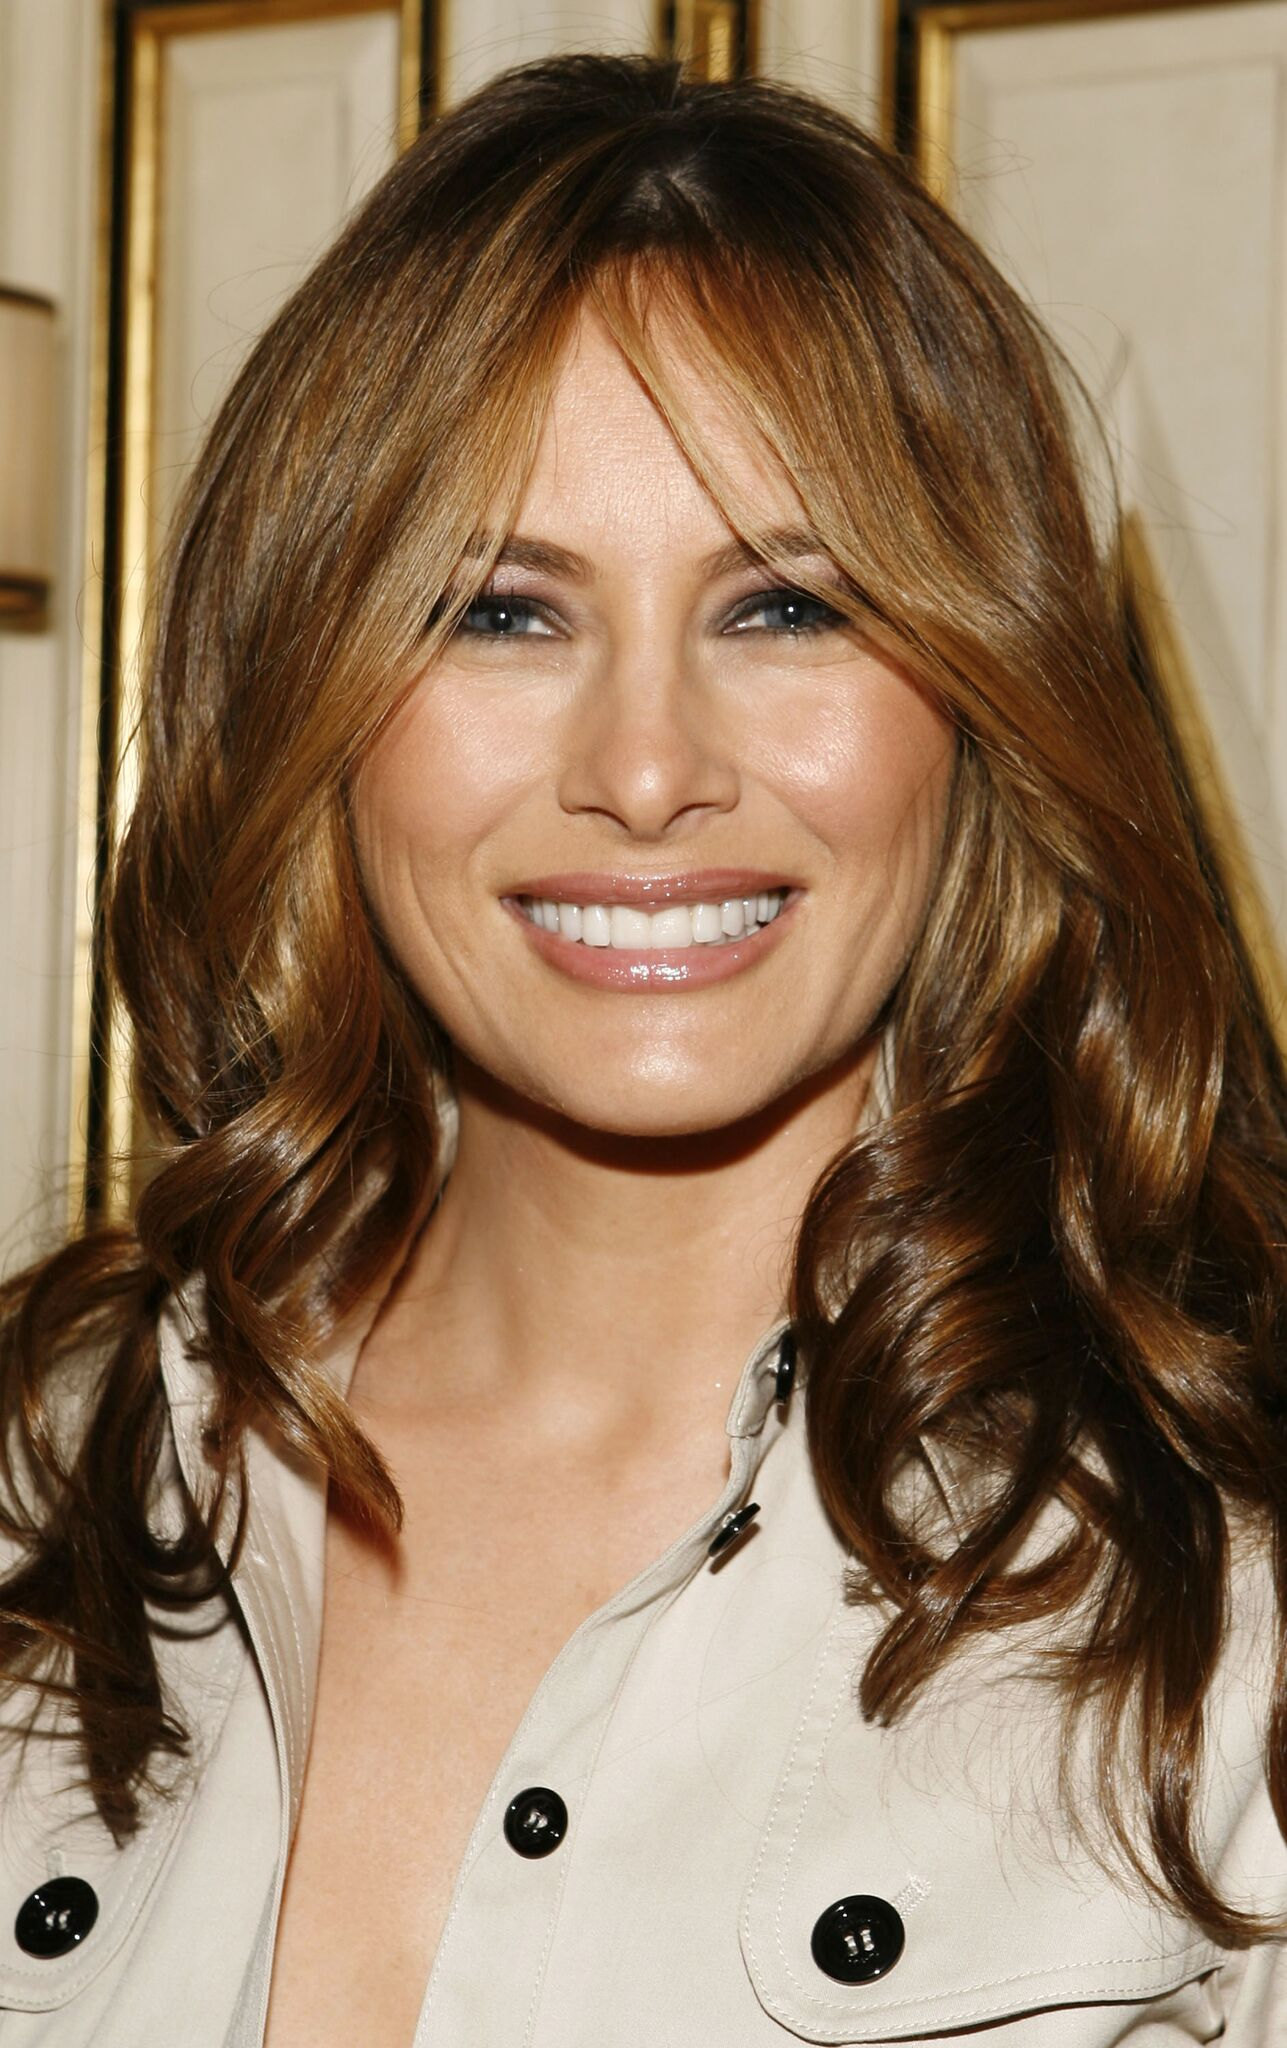 Melania Trump attends the Best & Co. Fashion Show and Breakfast to Benefit Society of Memorial Sloan-Kettering at Bergdorf Goodman on April 12, 2007 | Photo: Getty Images